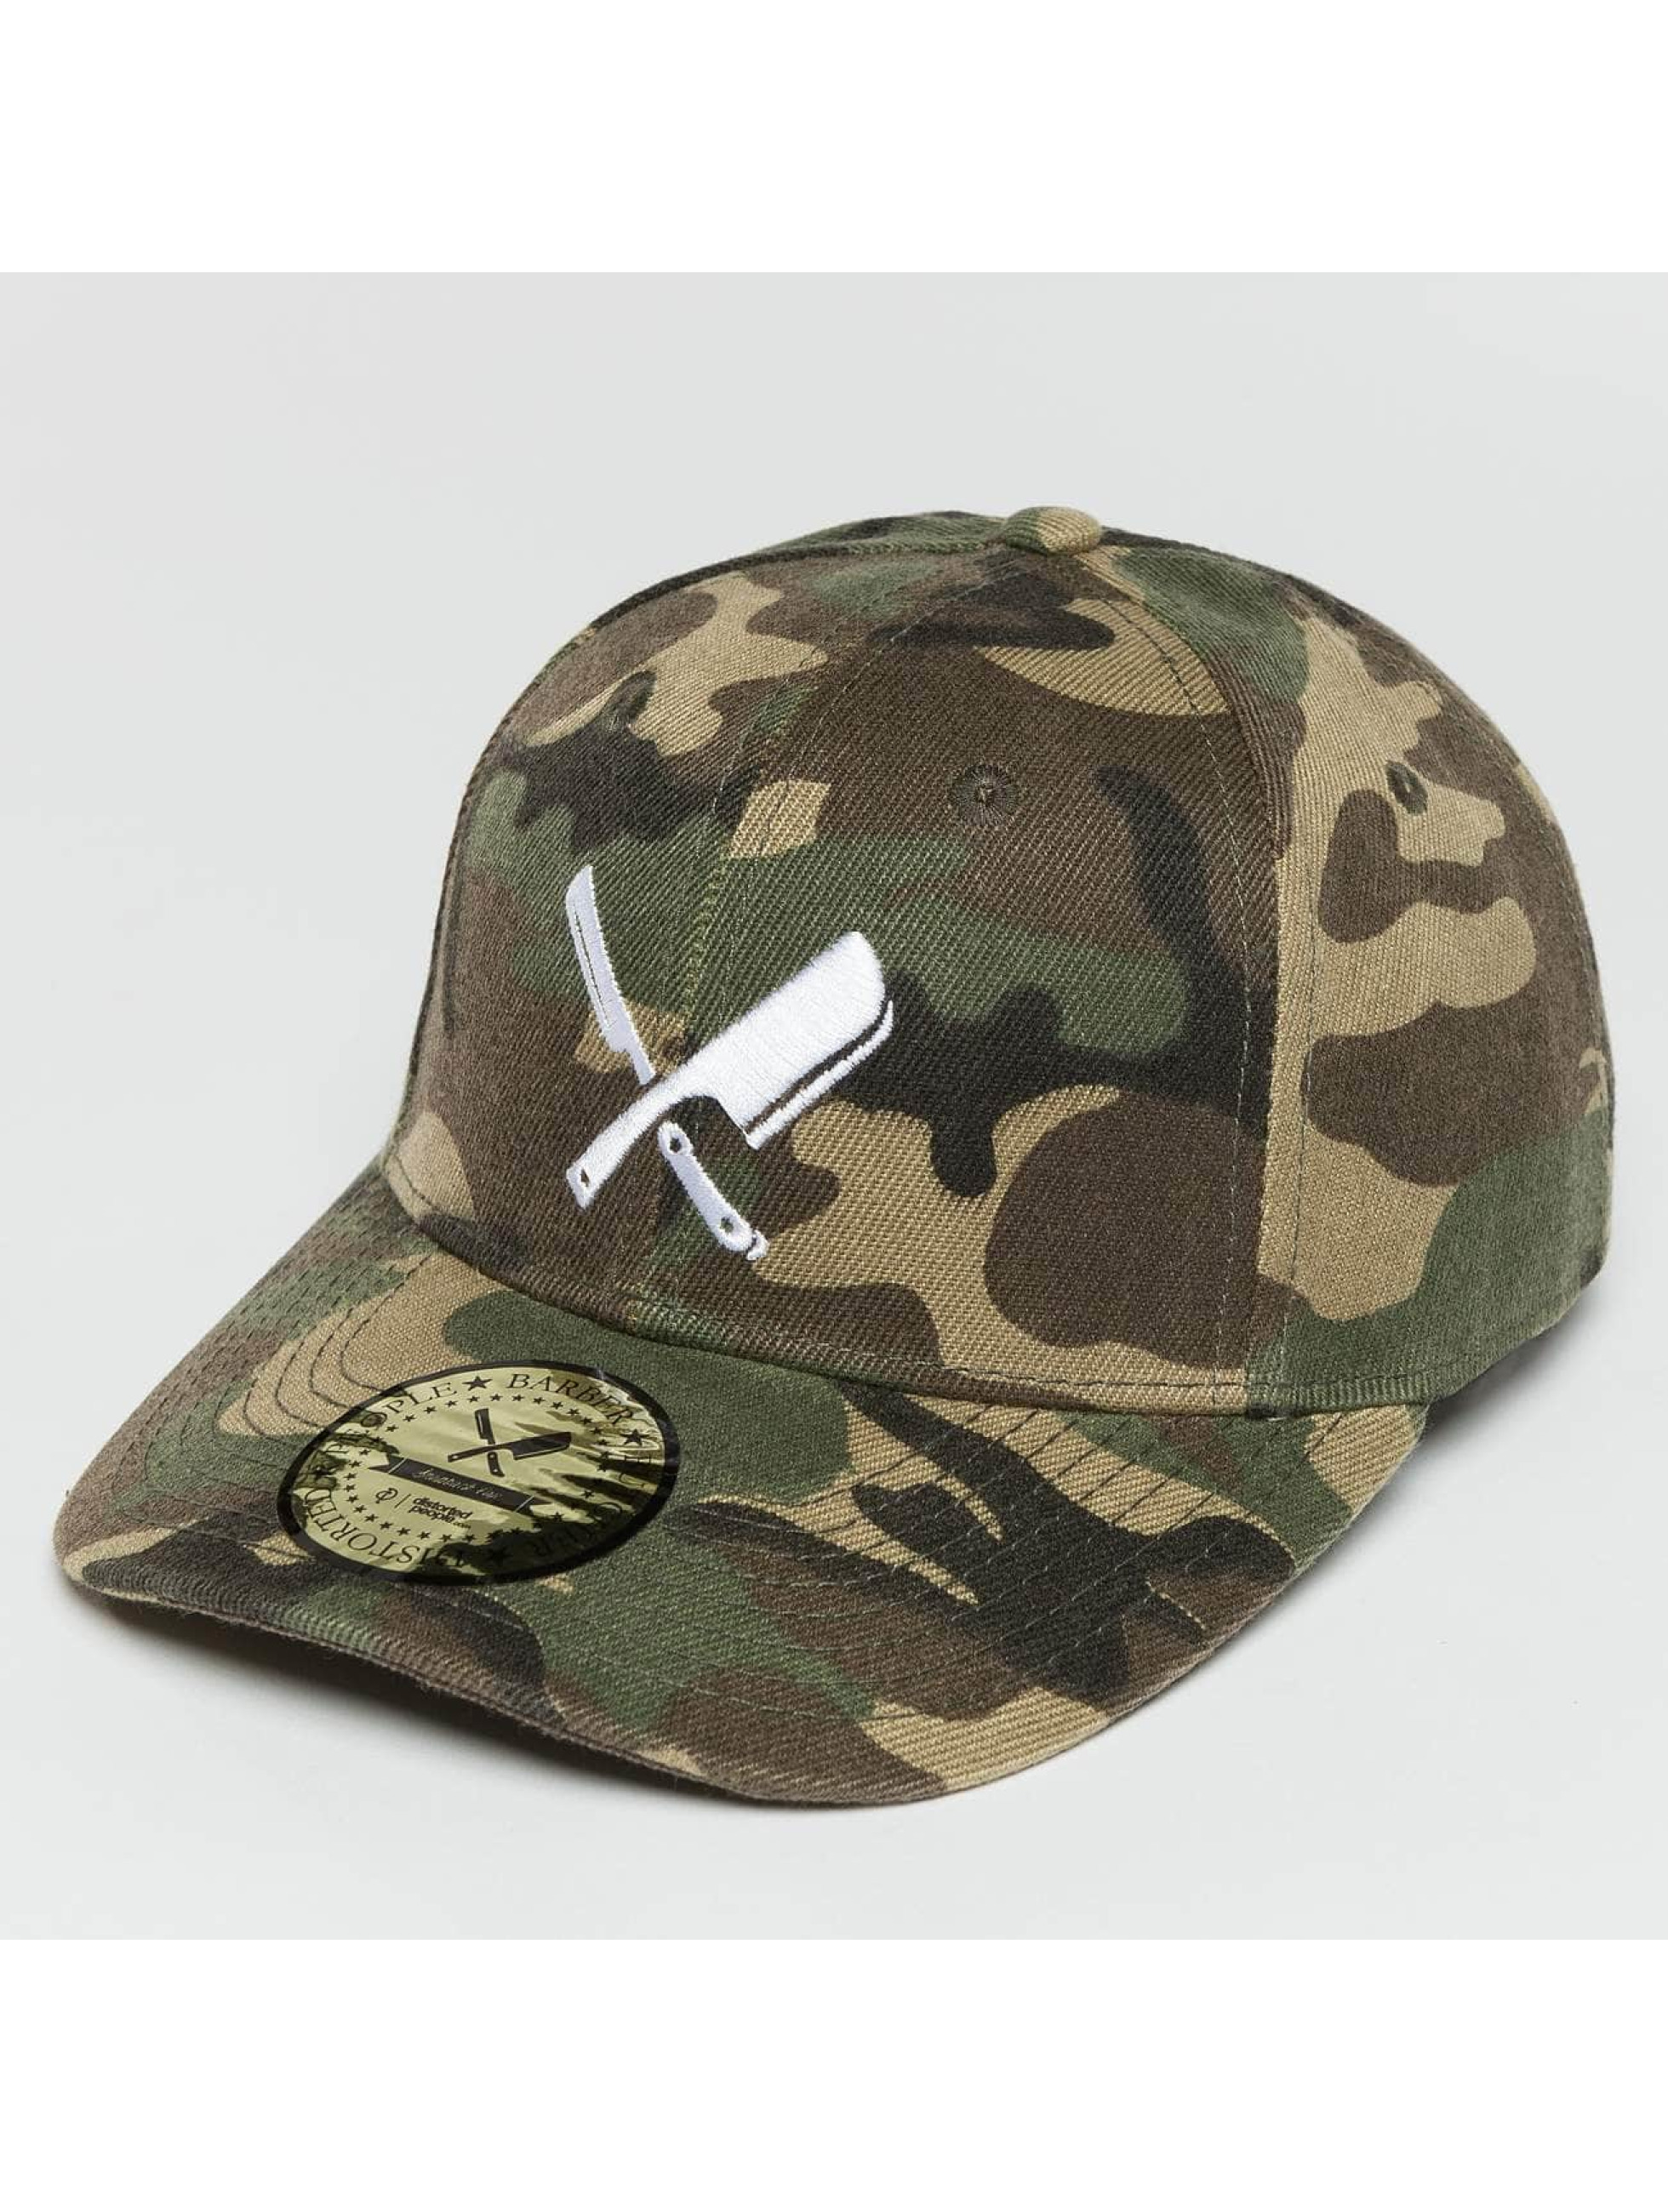 Distorted People Snapback Caps Blades moro